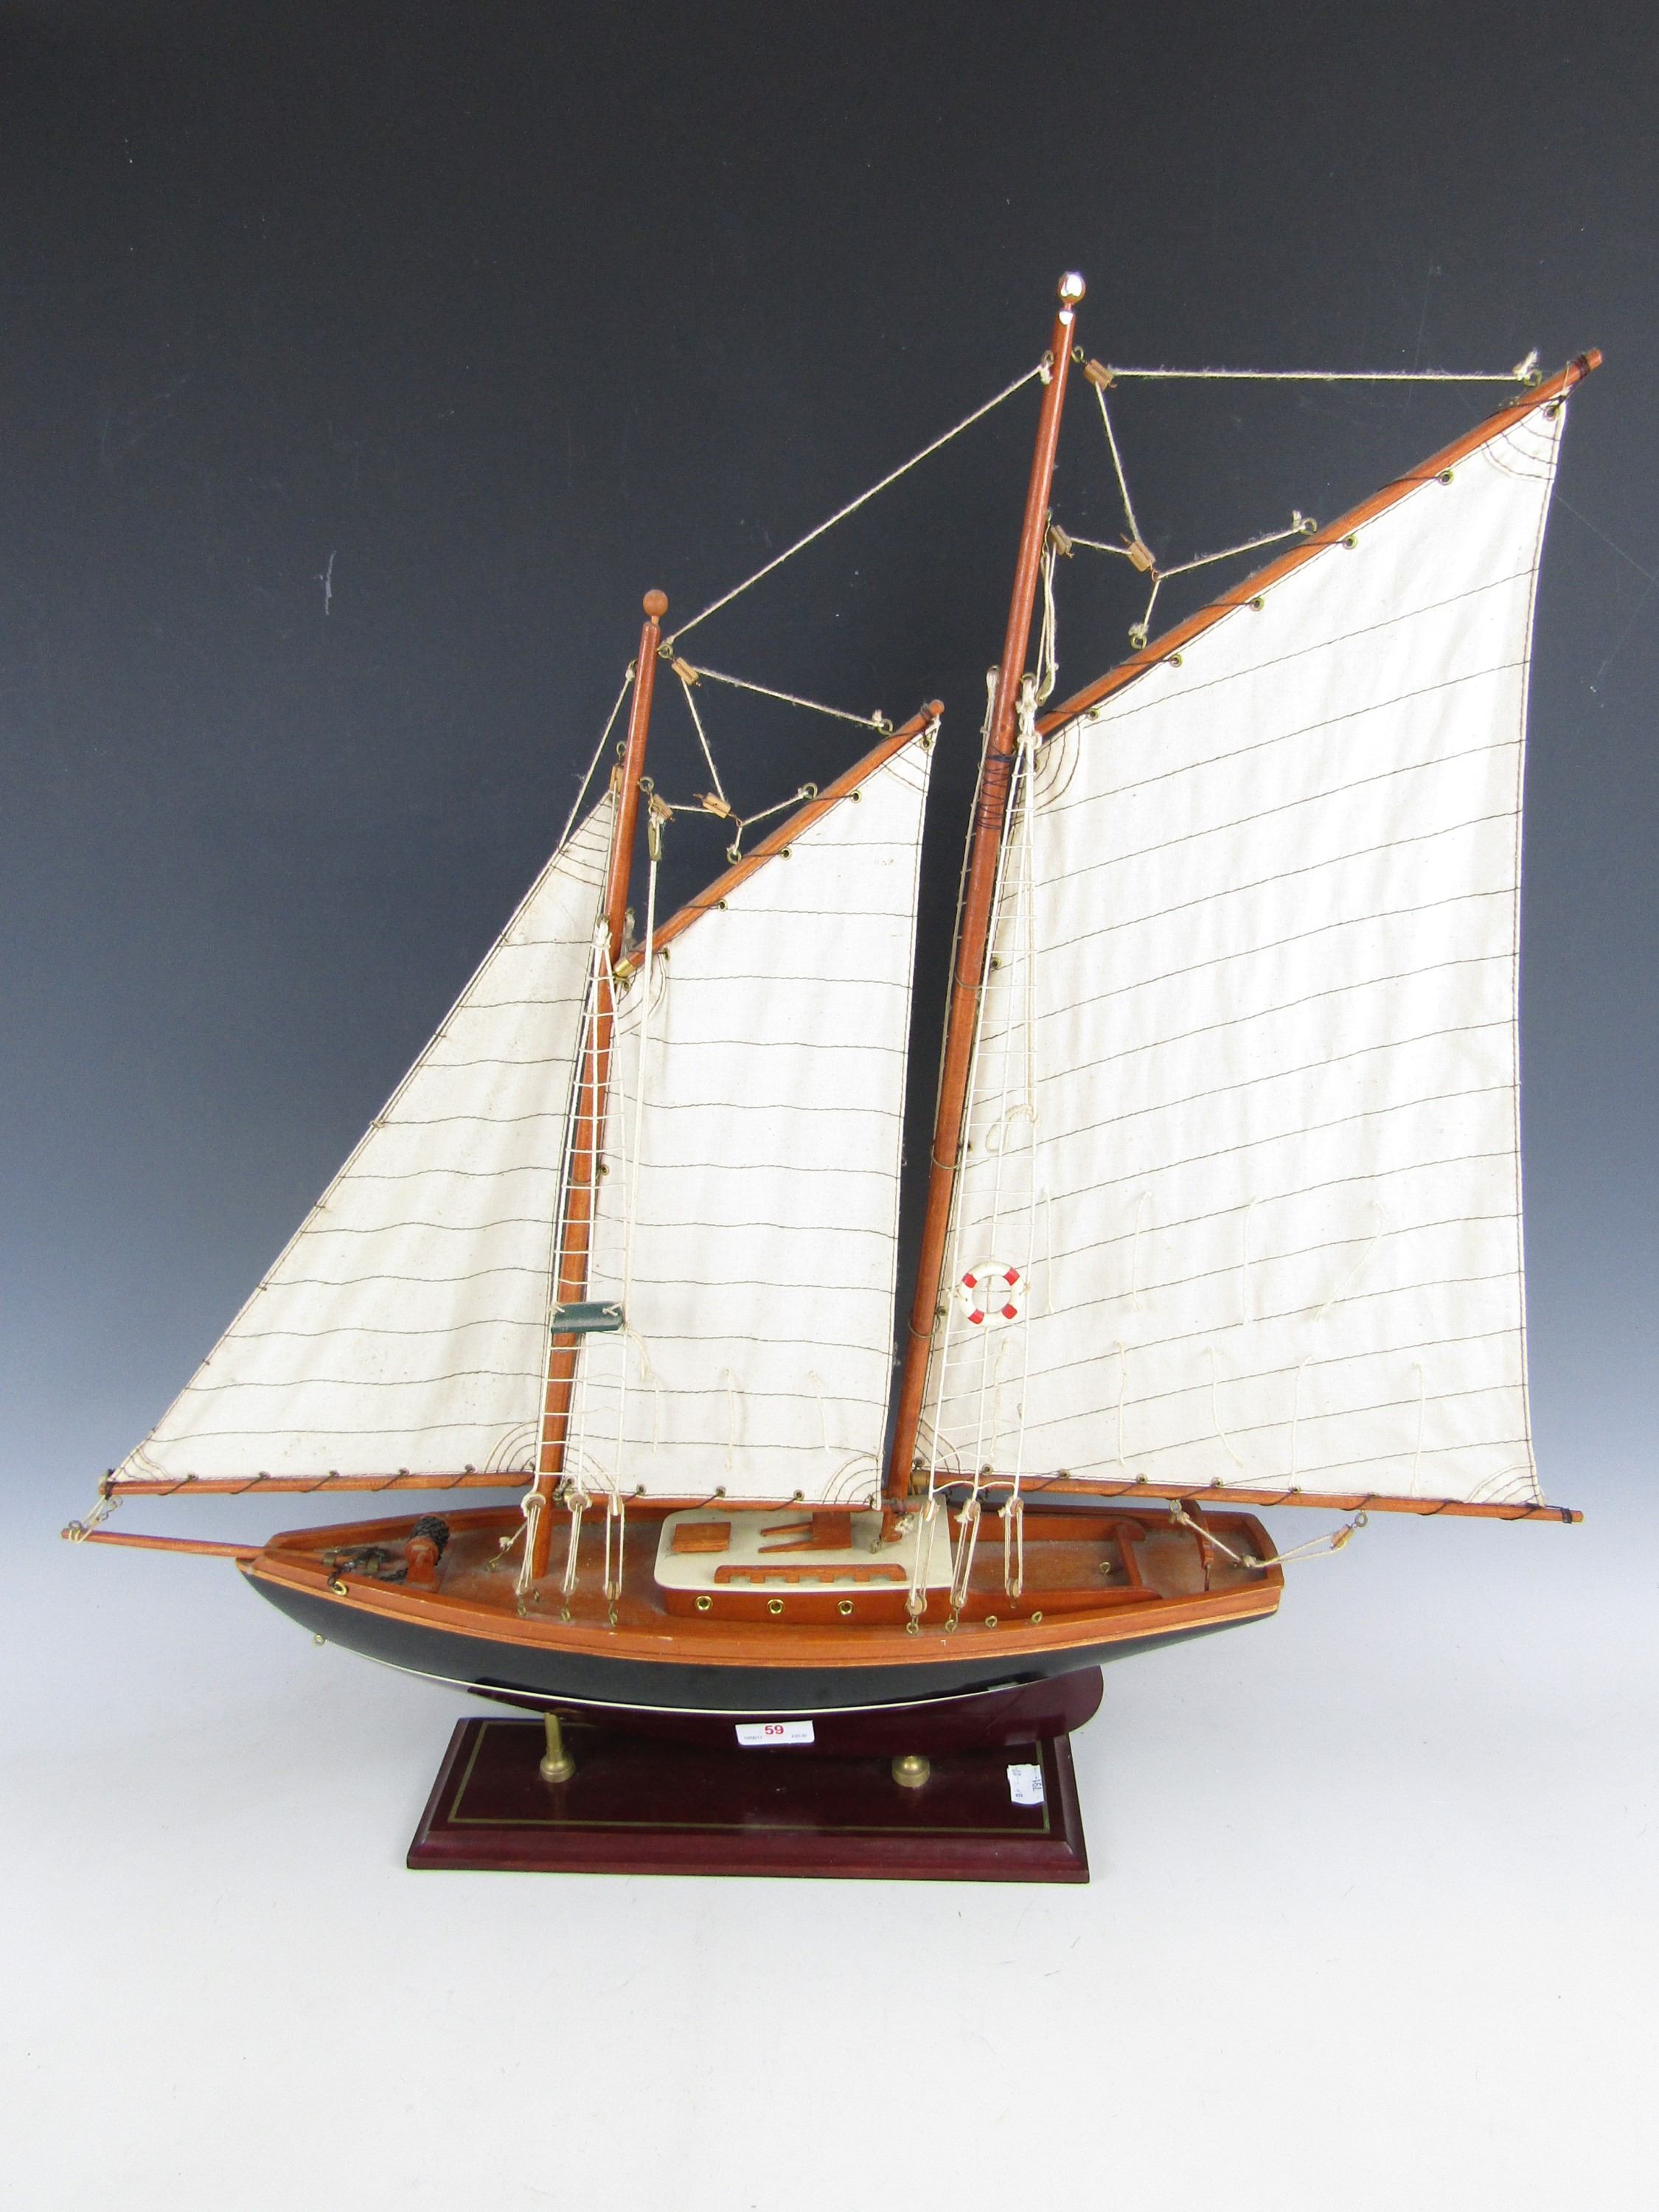 Lot 59 - A wooden scale model of a yacht with canvas sails